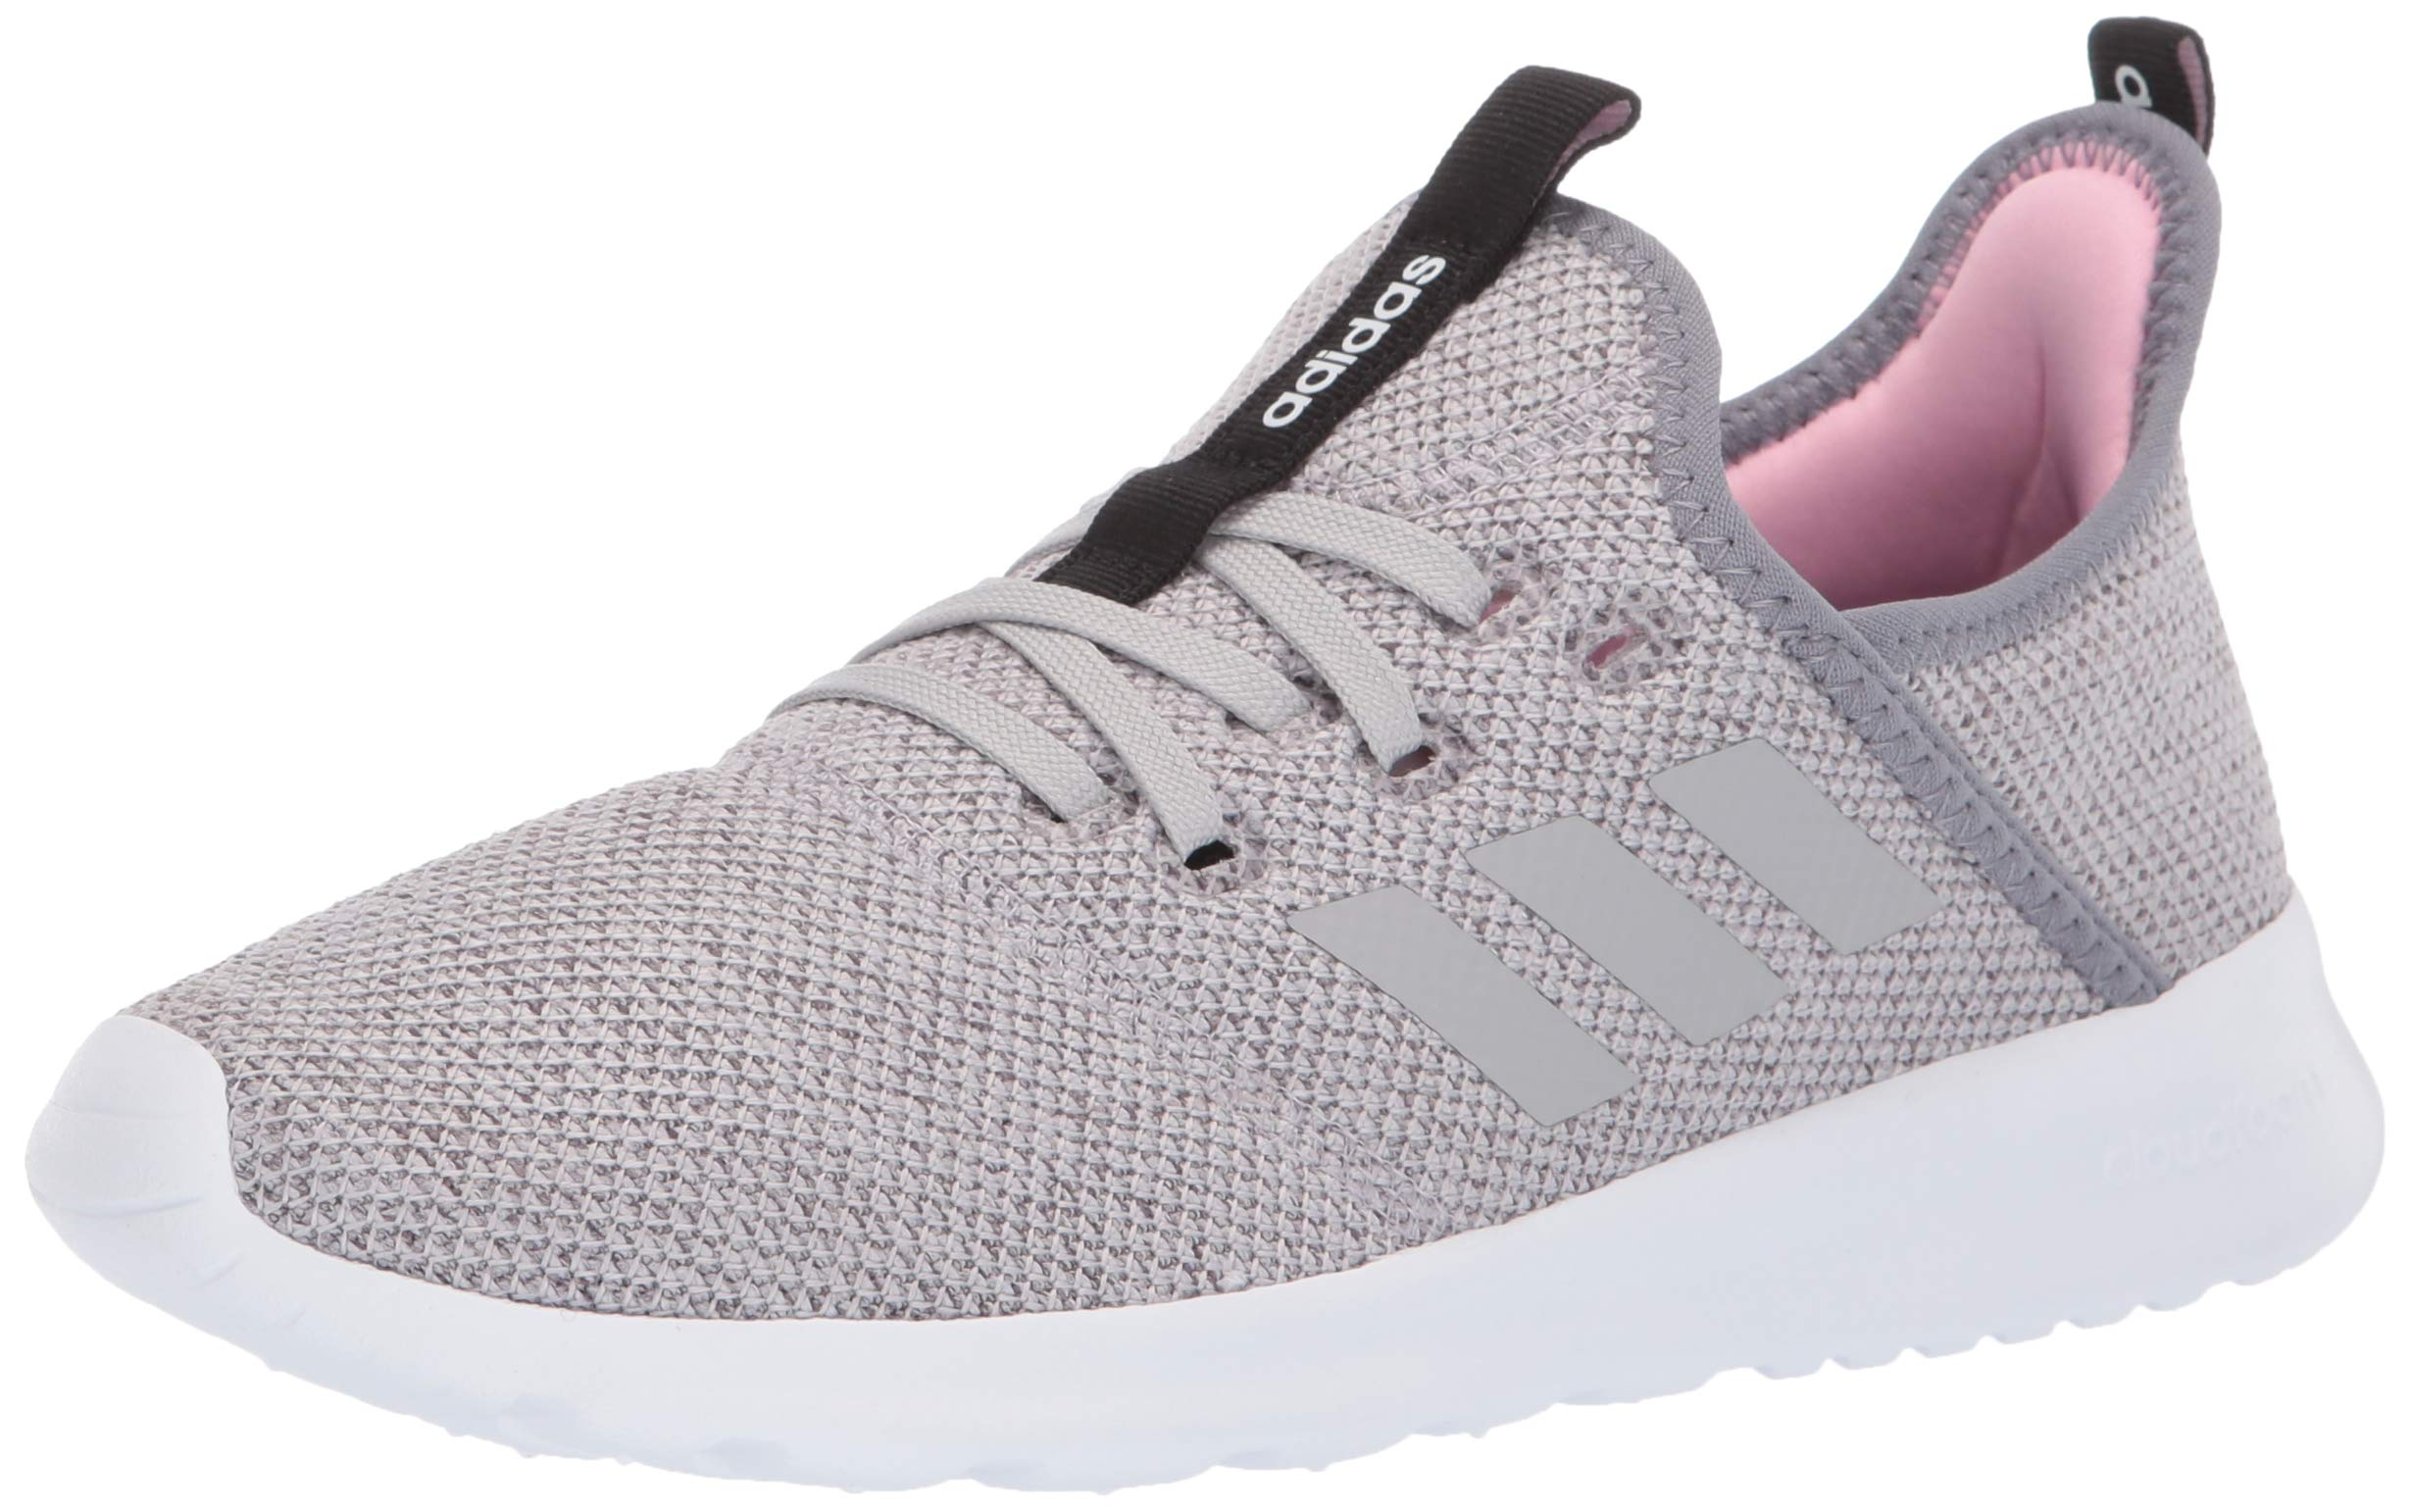 adidas Women's Cloudfoam Pure, Grey/True Pink, 5 M US by adidas (Image #1)